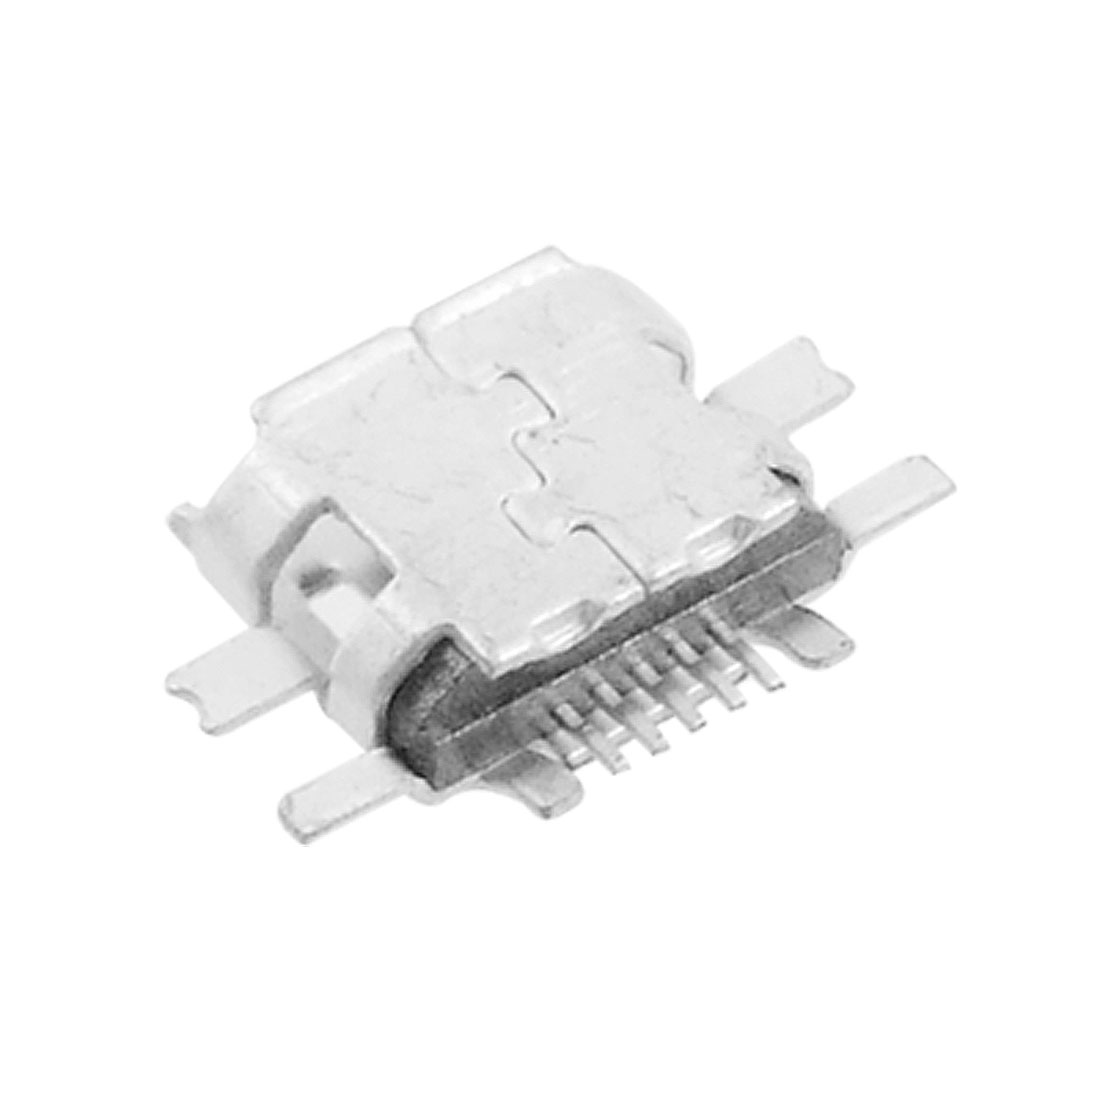 Micro USB Data Port Charging Connector for Nokia N97